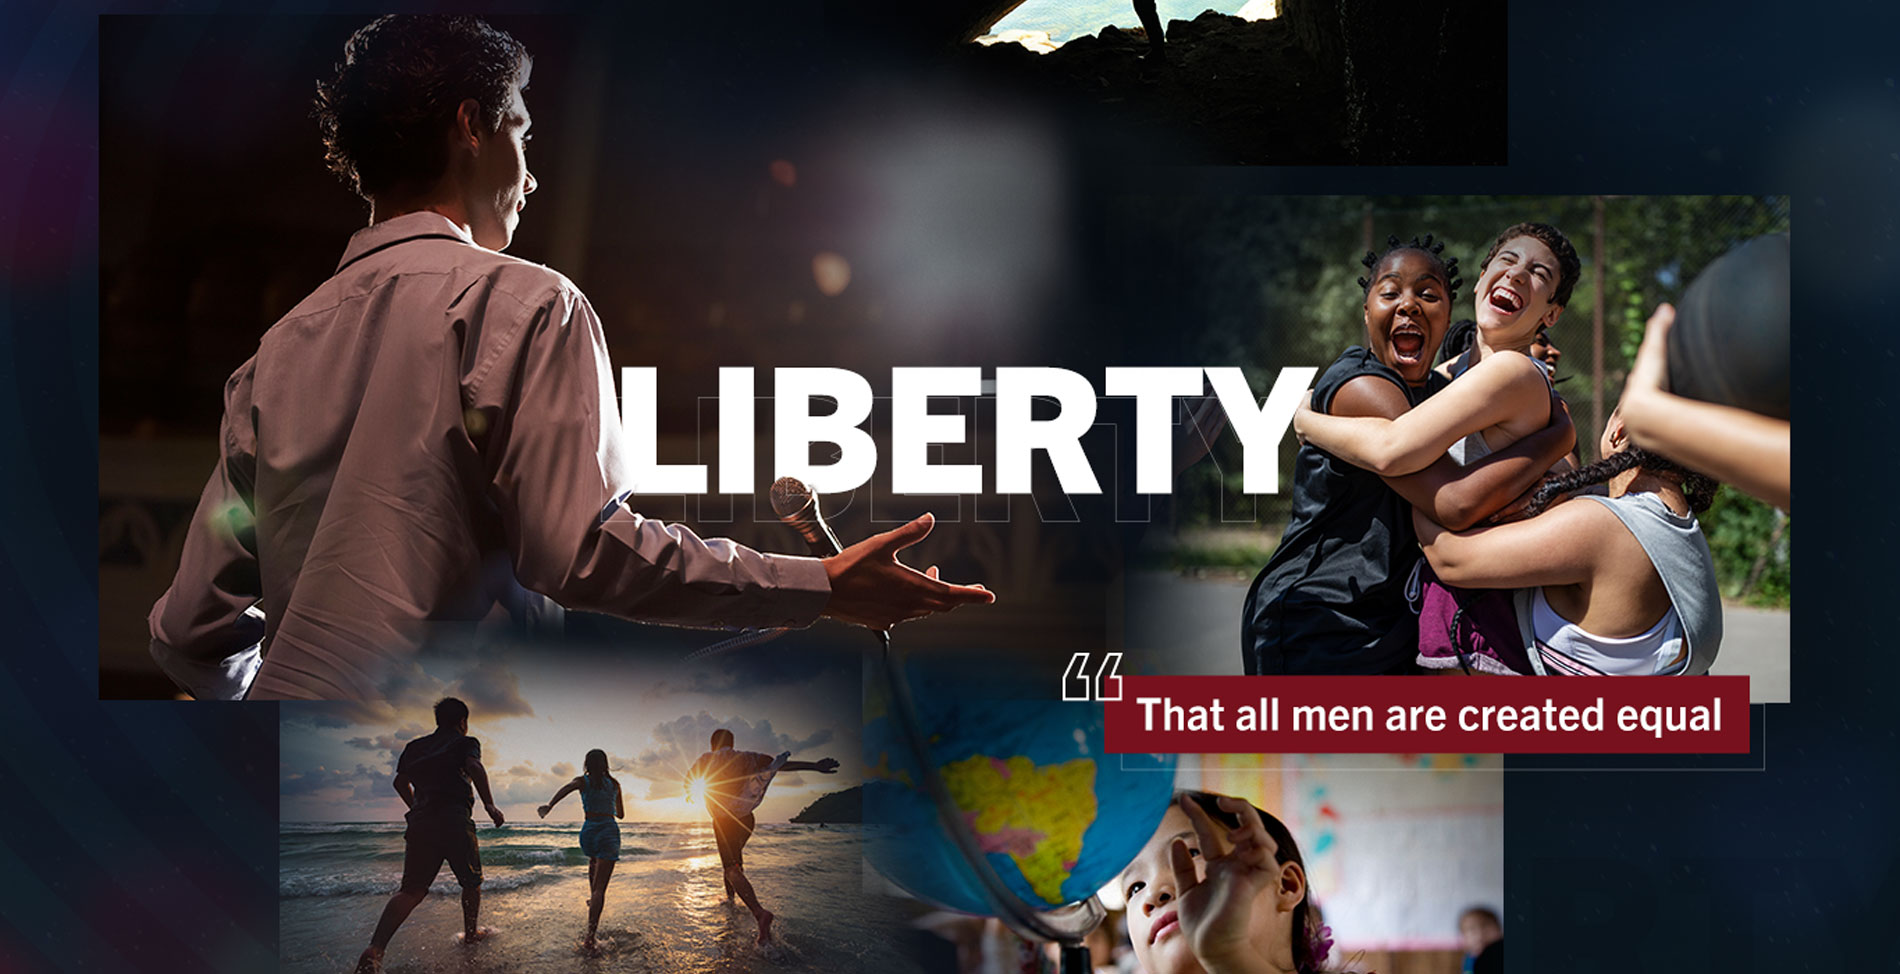 Liberty. That all men are created equal